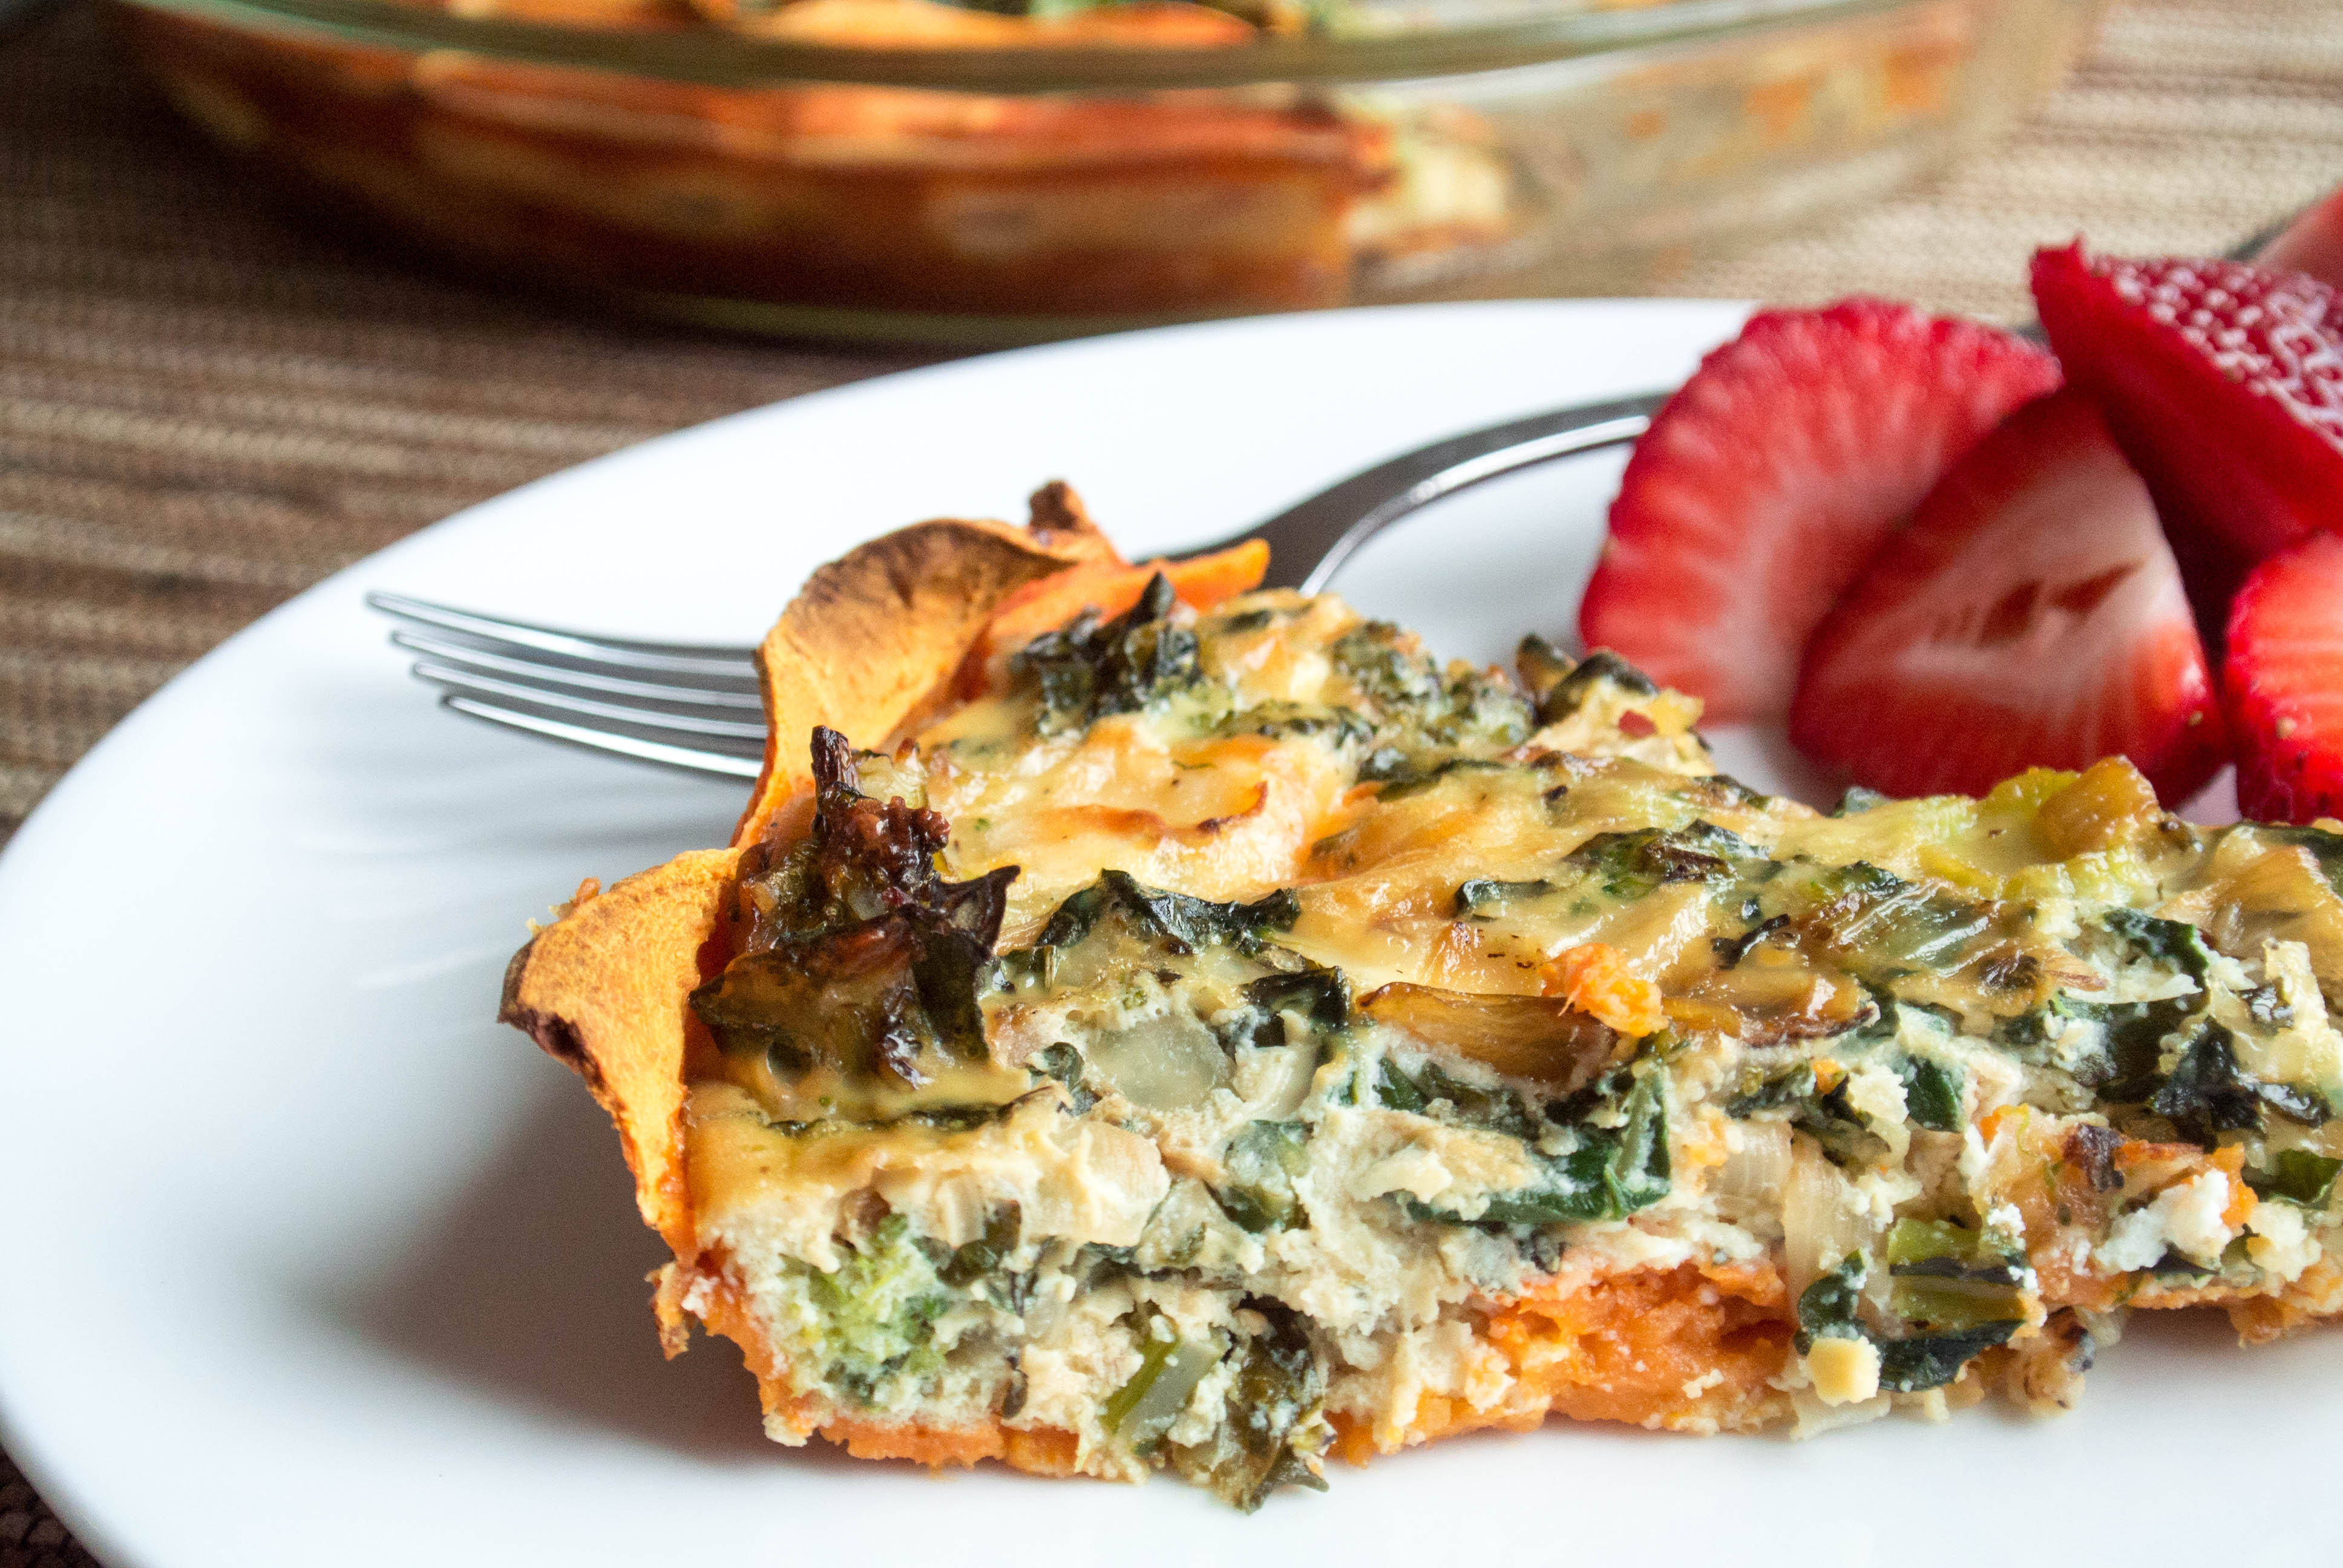 Kale Egg Quiche With Sweet Potato Crust